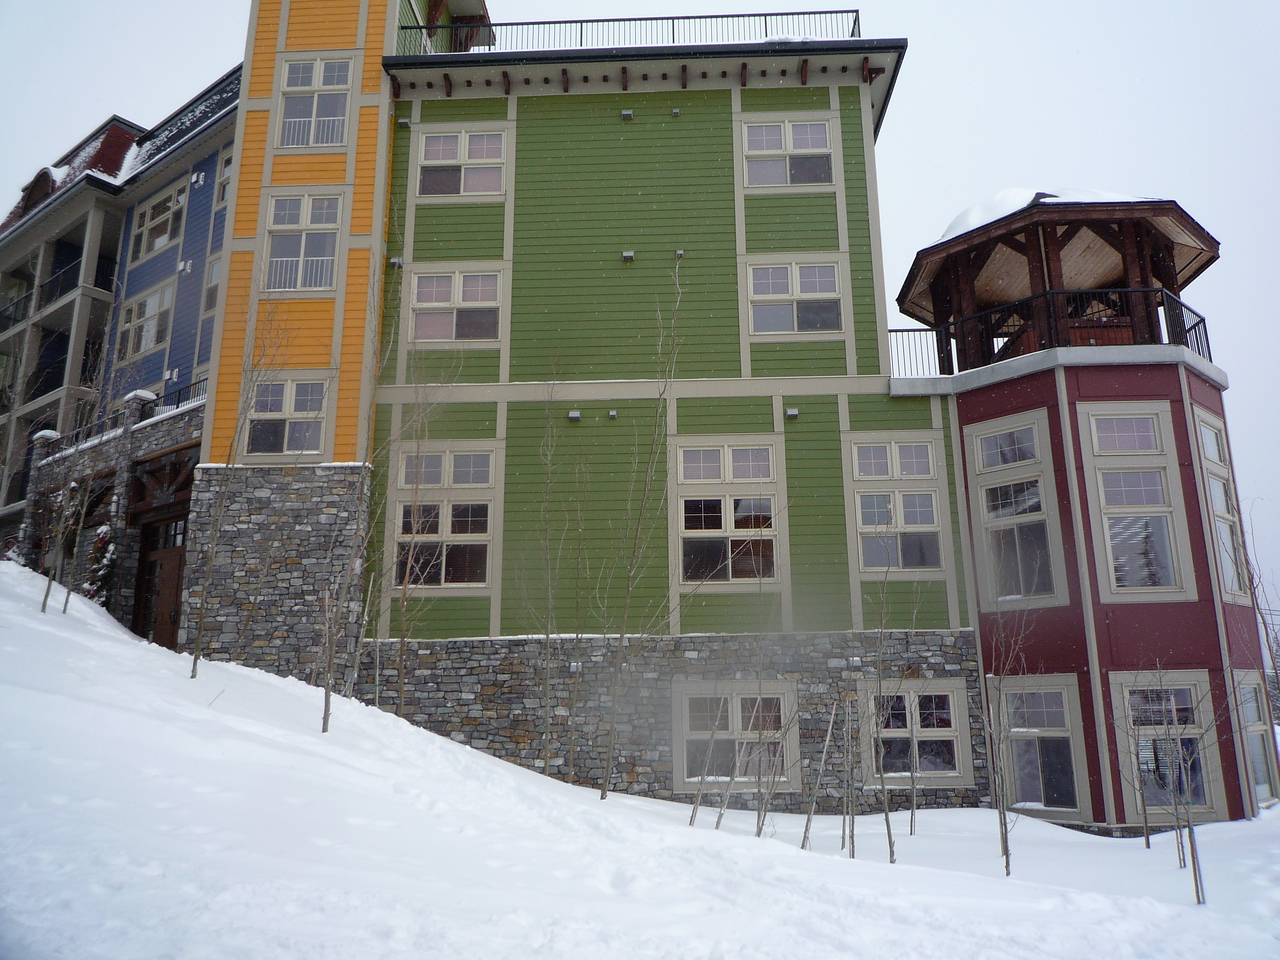 Every building in Silver Star has to be painted with 5 unique colours.  Again, this is the end of Snowbird Lodge.